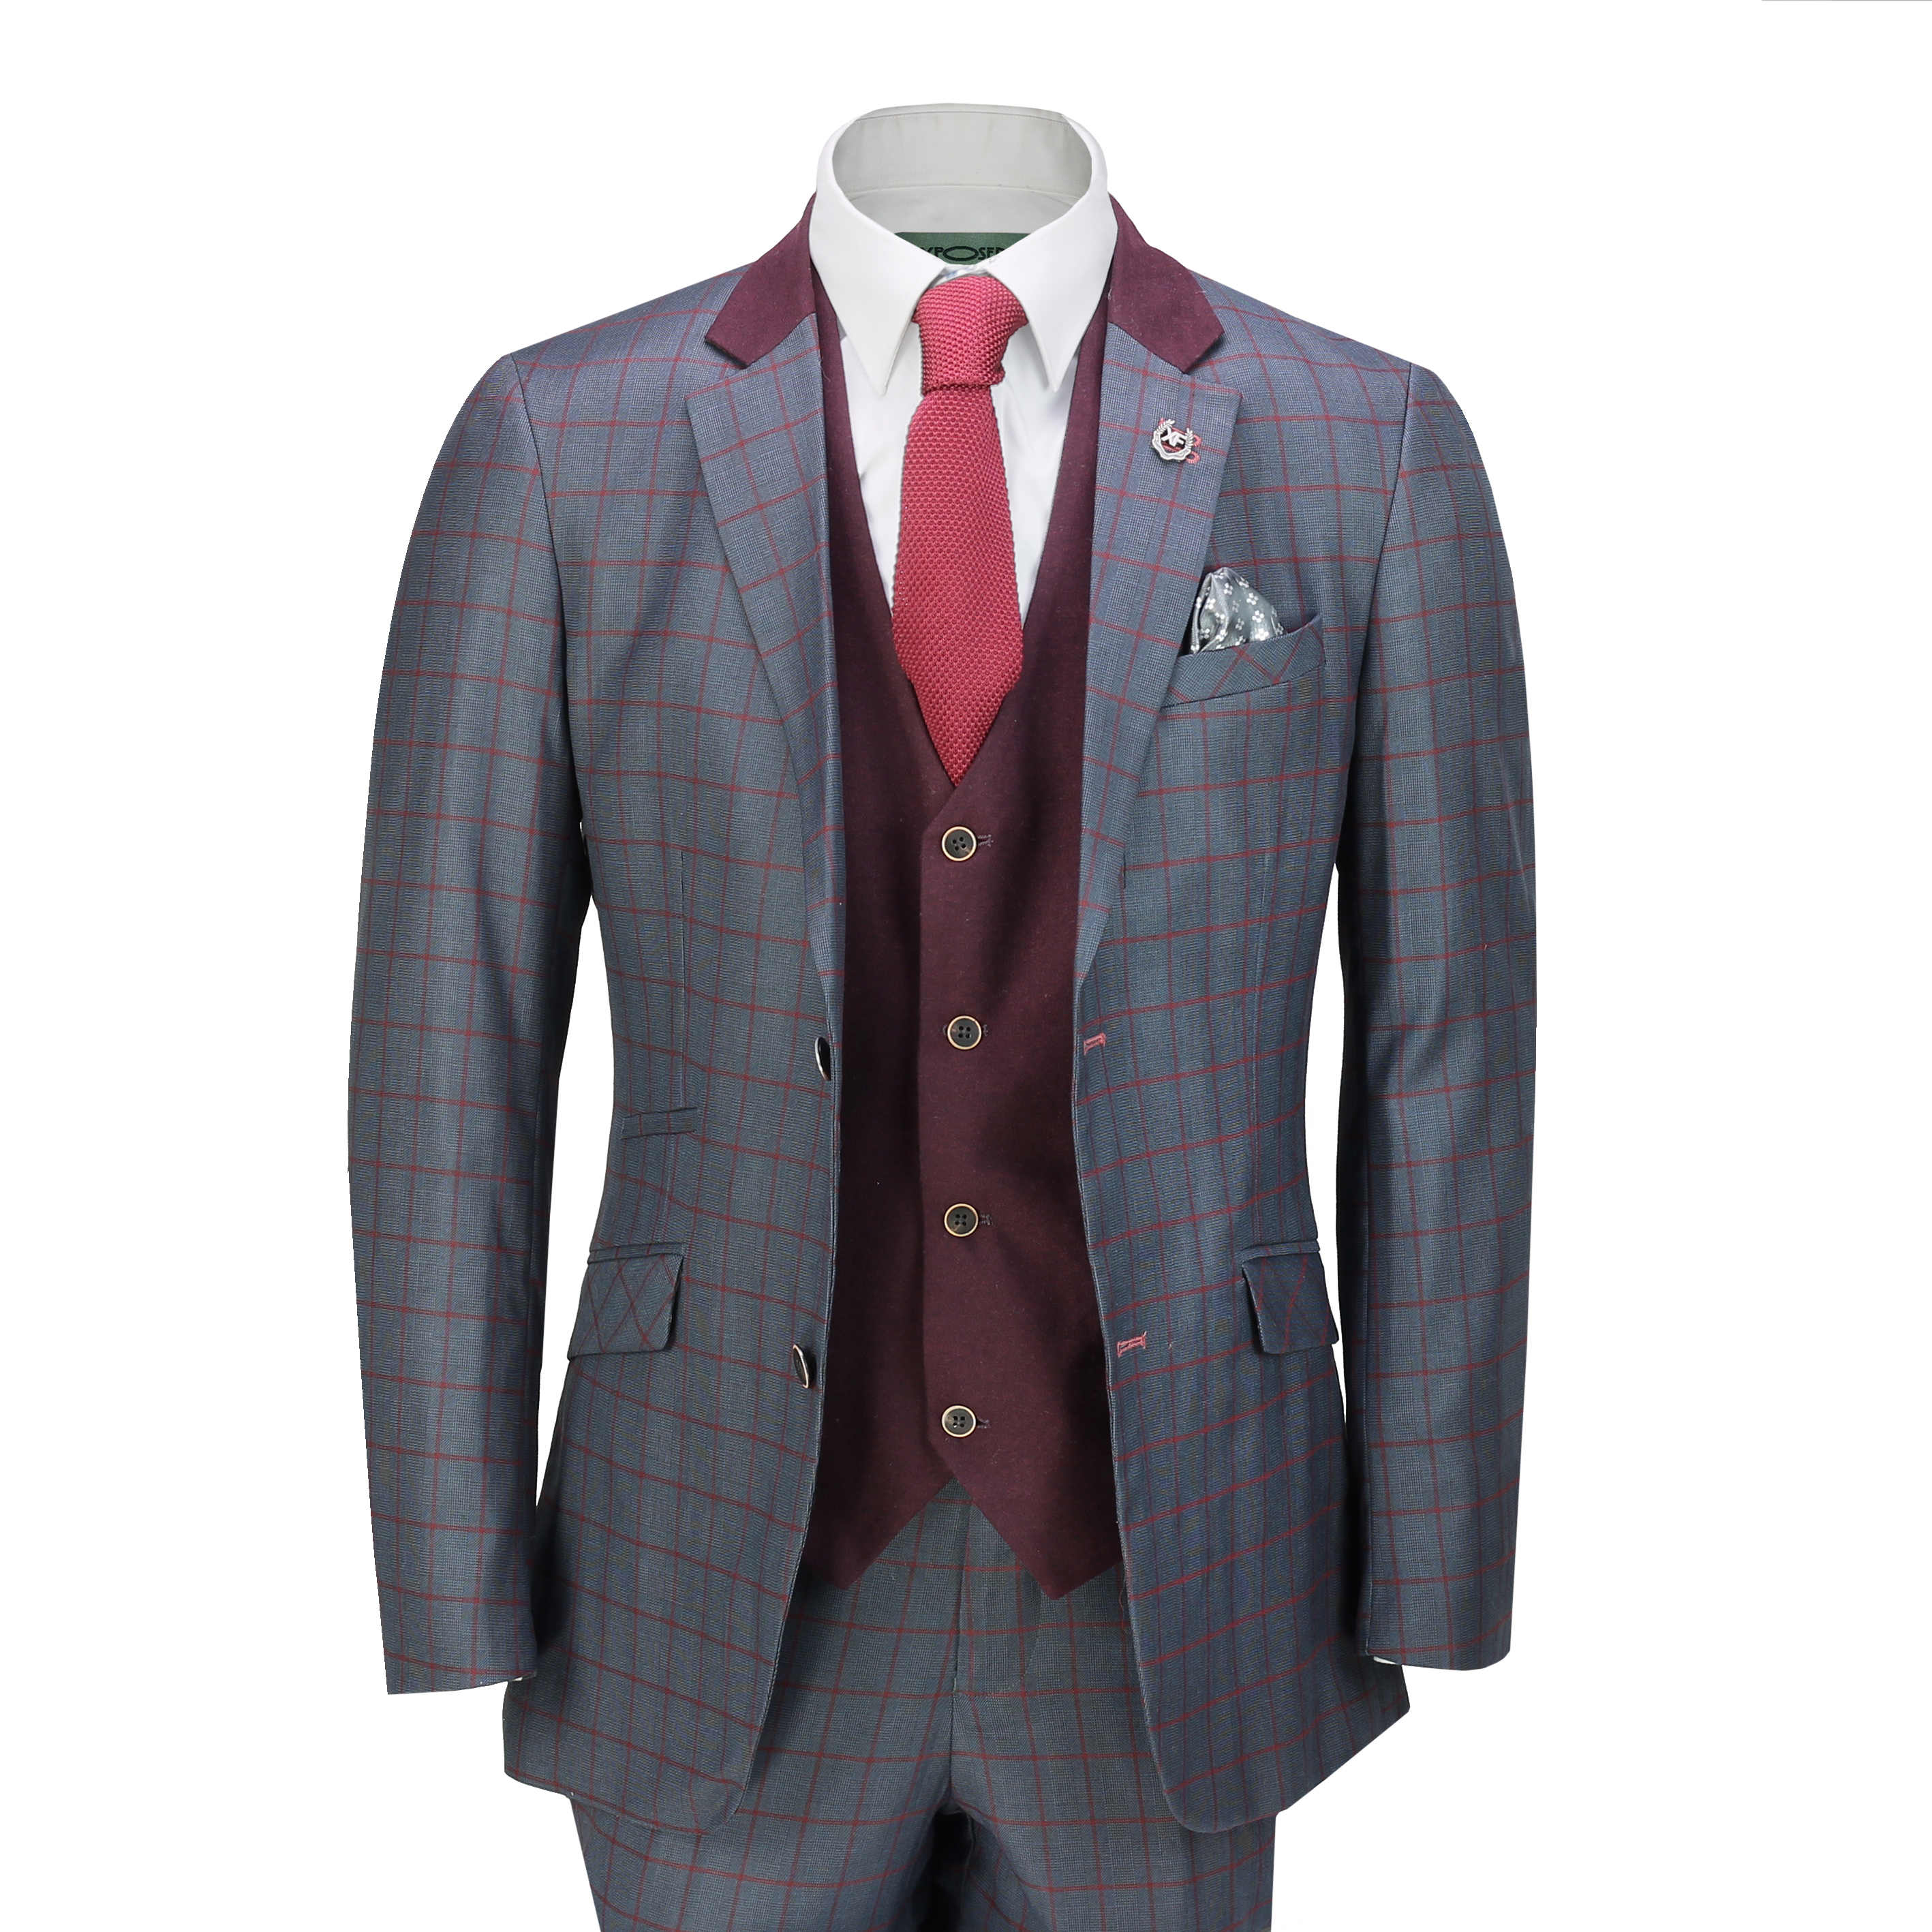 Xposed Mens 3 Piece Double Breasted Suit Retro Royal Blue Check Tailored Fit Blazer Trousers Waistcoat